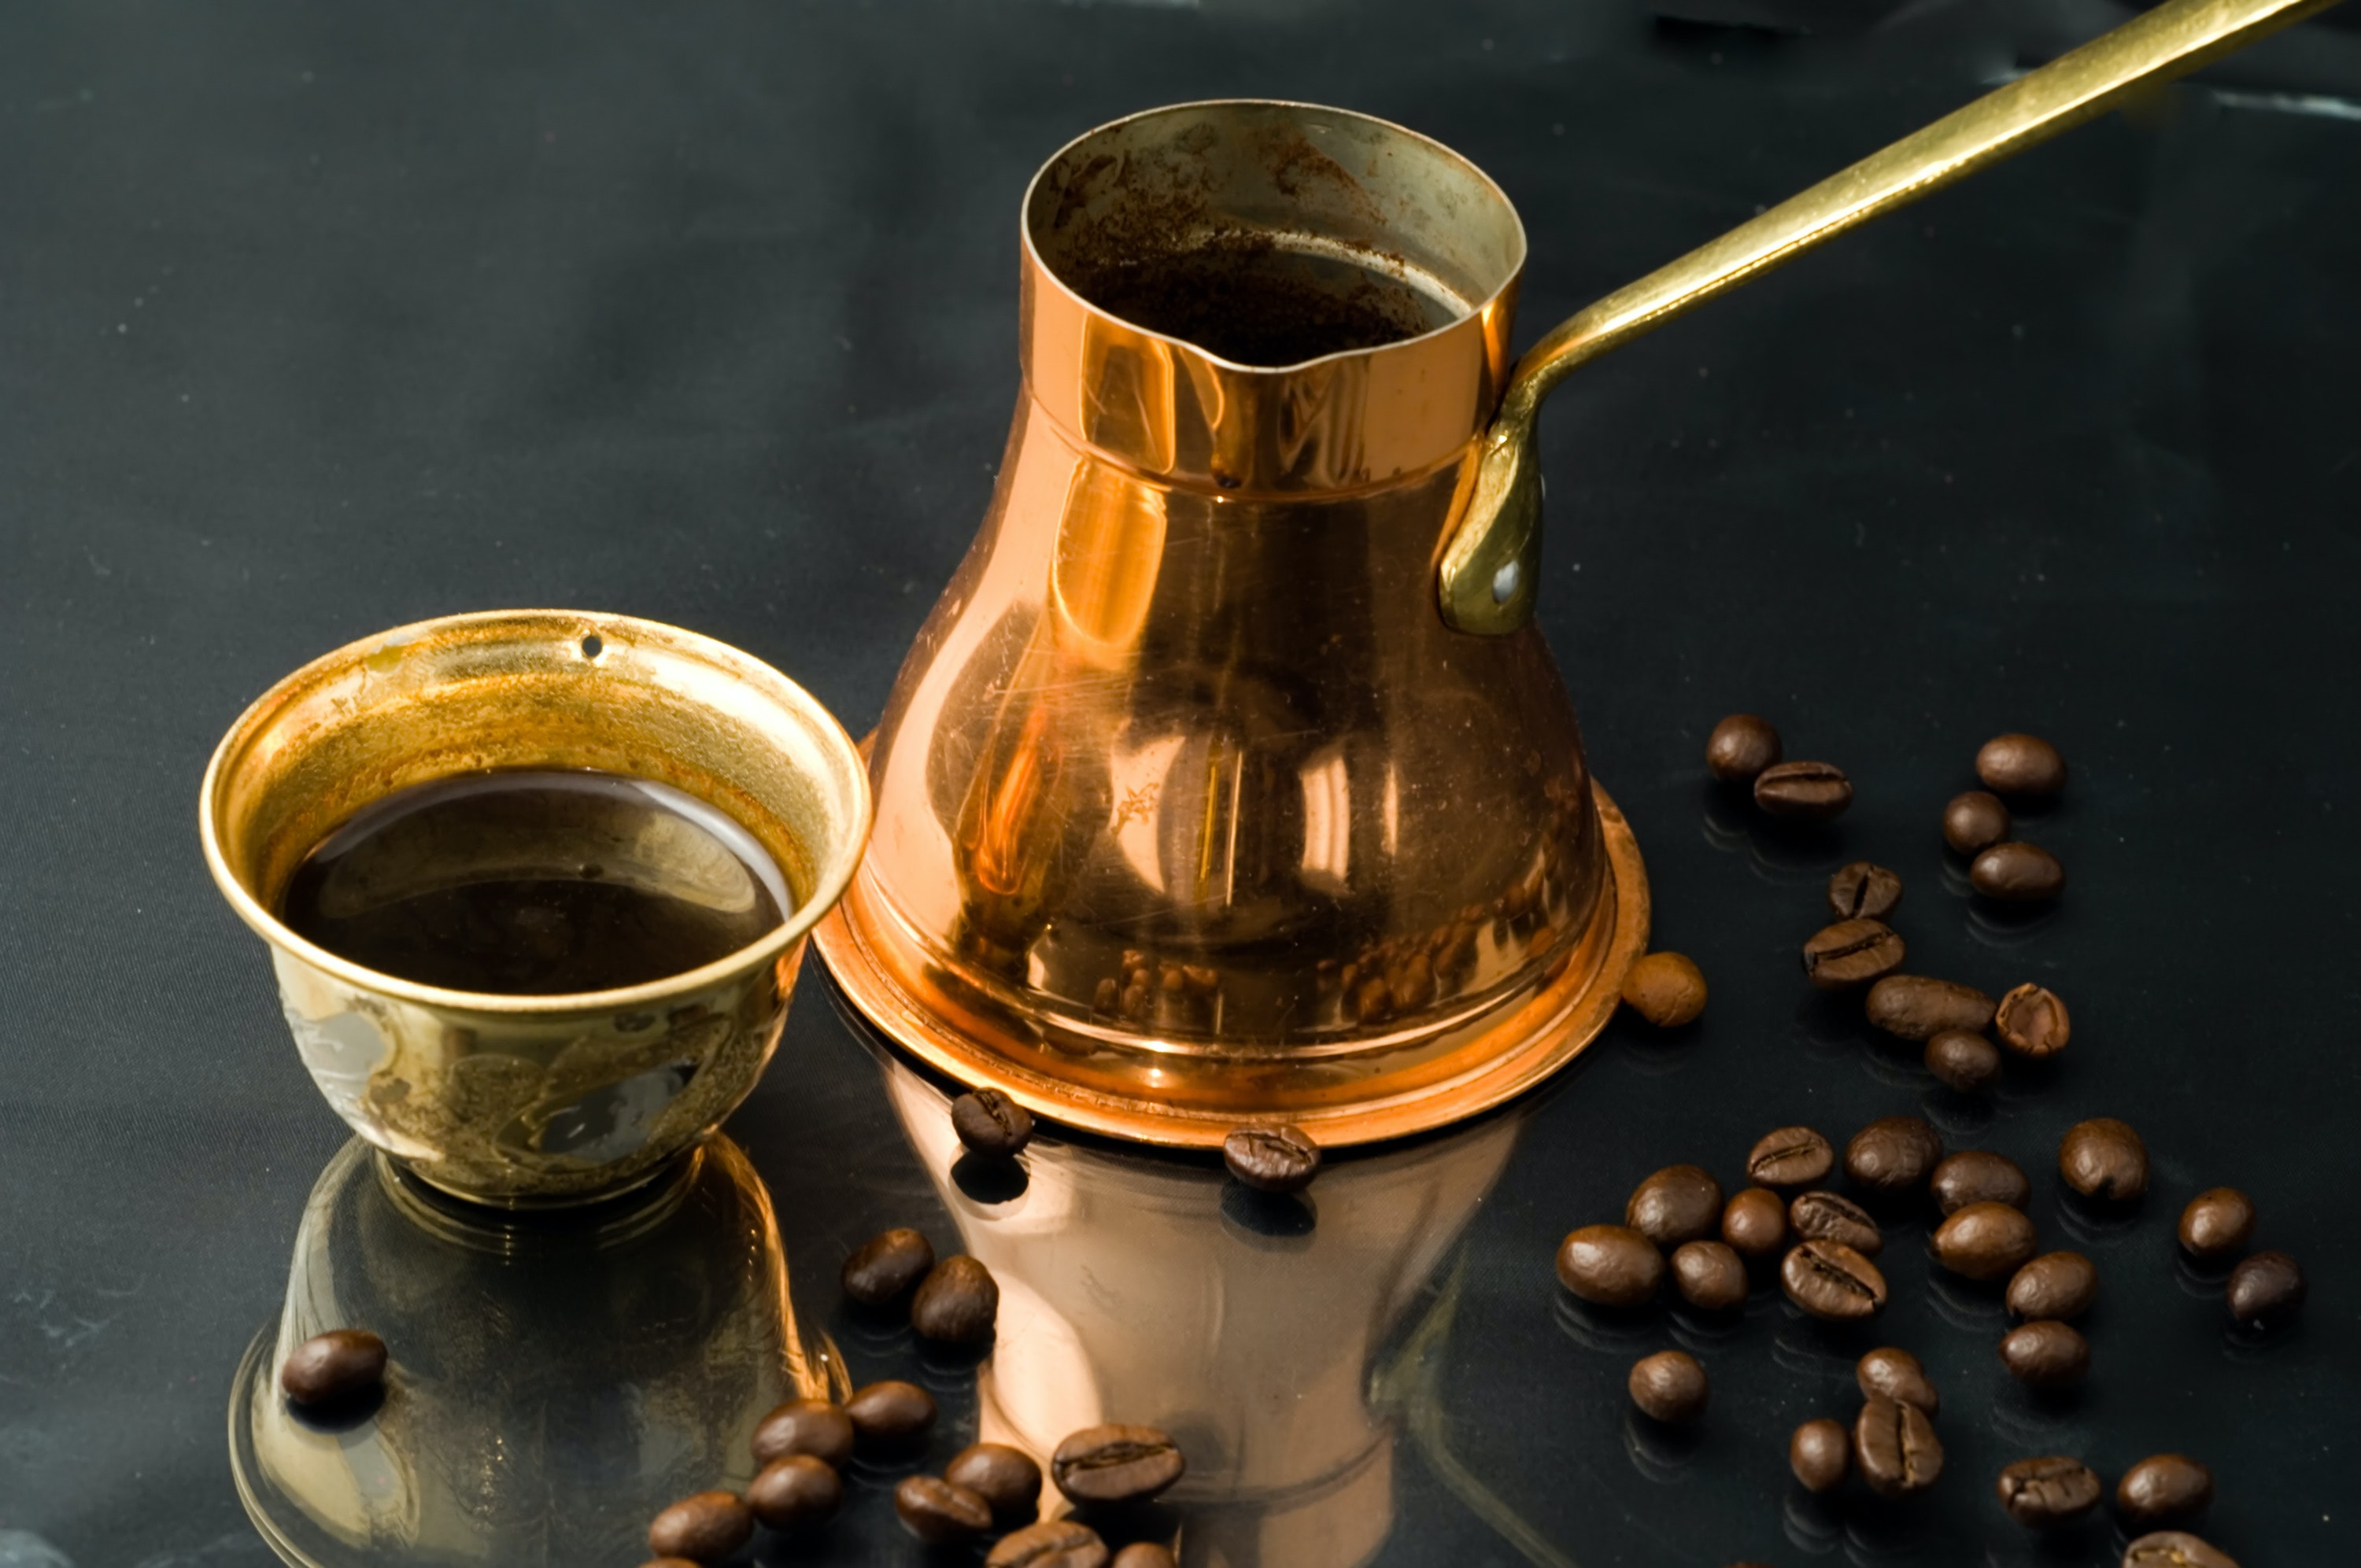 cezve bot and lid on glass surface with roasted coffee beans